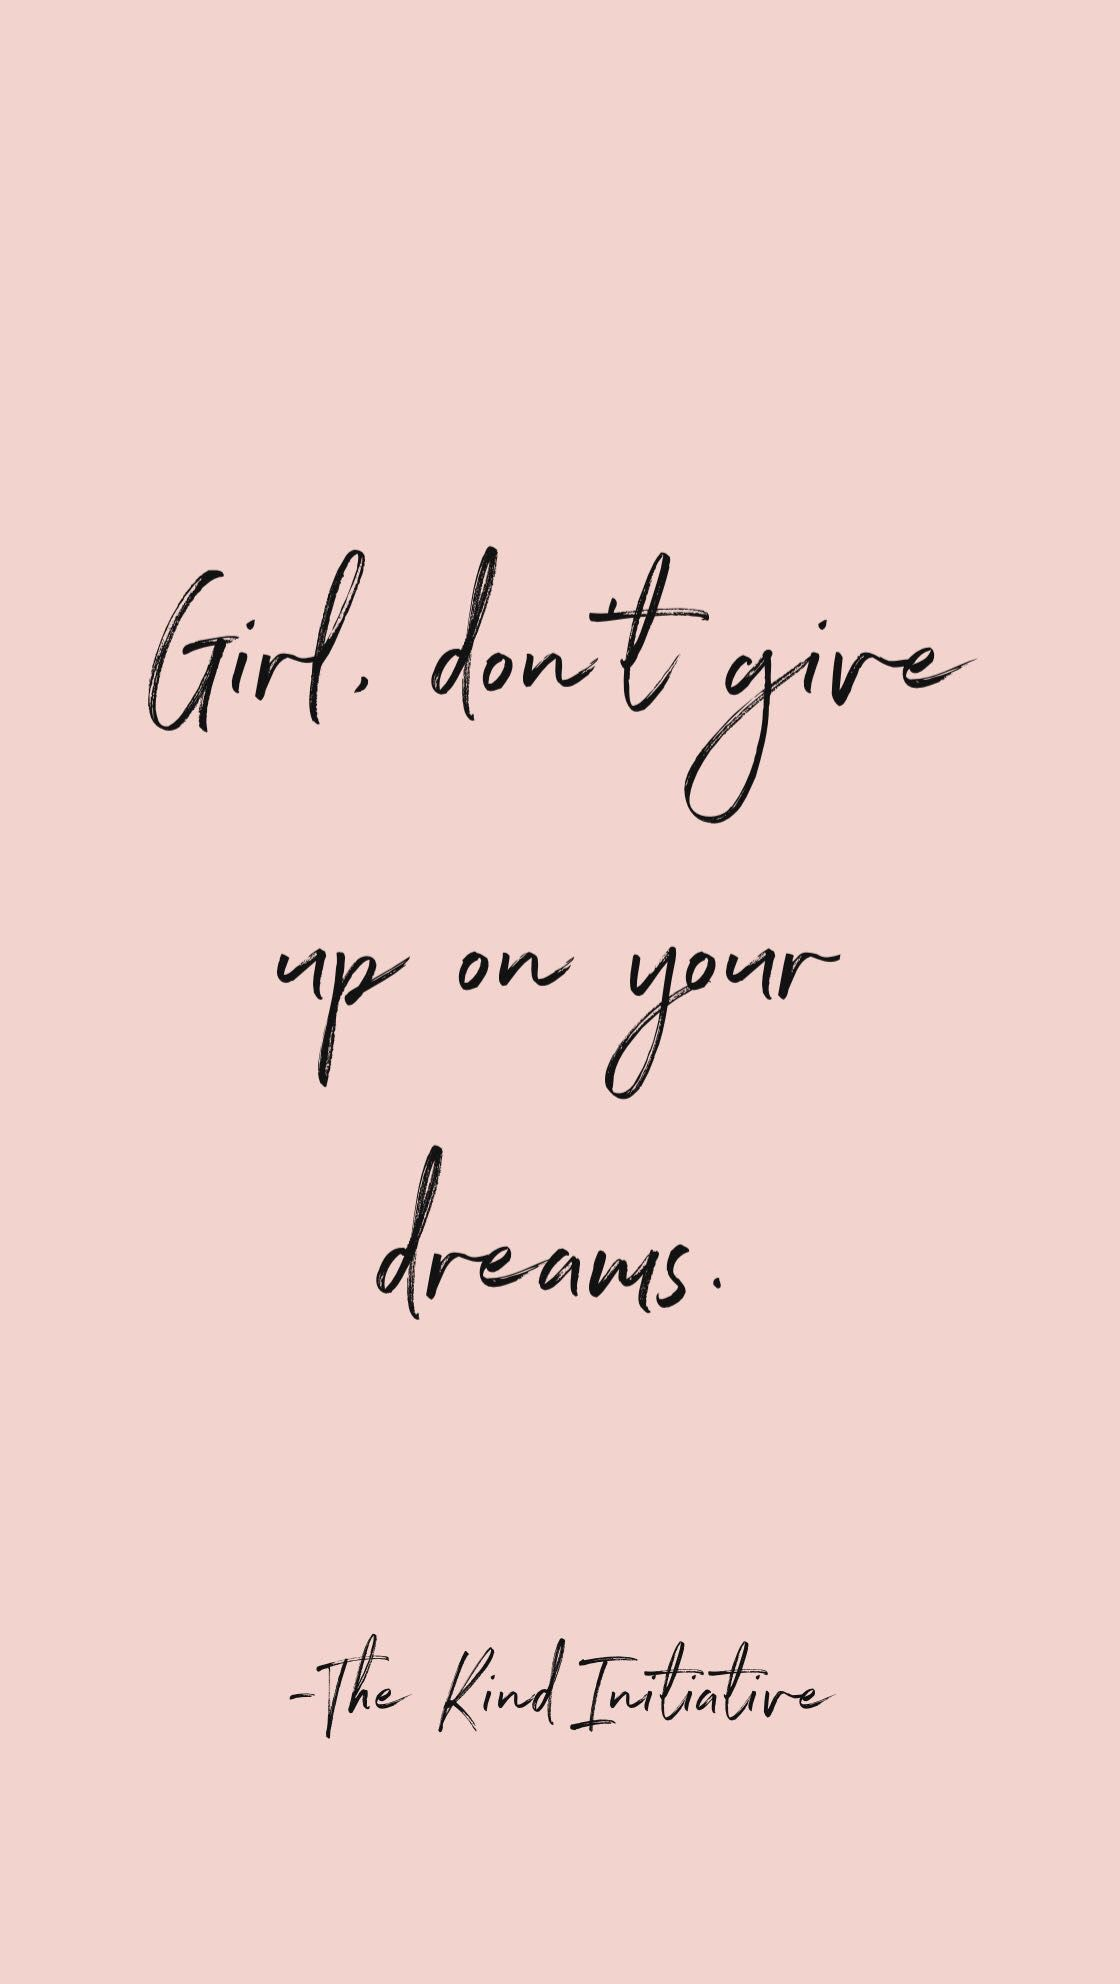 Get To Know Me I M Lauren The Founder Of The Kind Initiative Wallpaper Quotes Inspirational Motivation Motivational Quotes For Women Inspirational Quotes